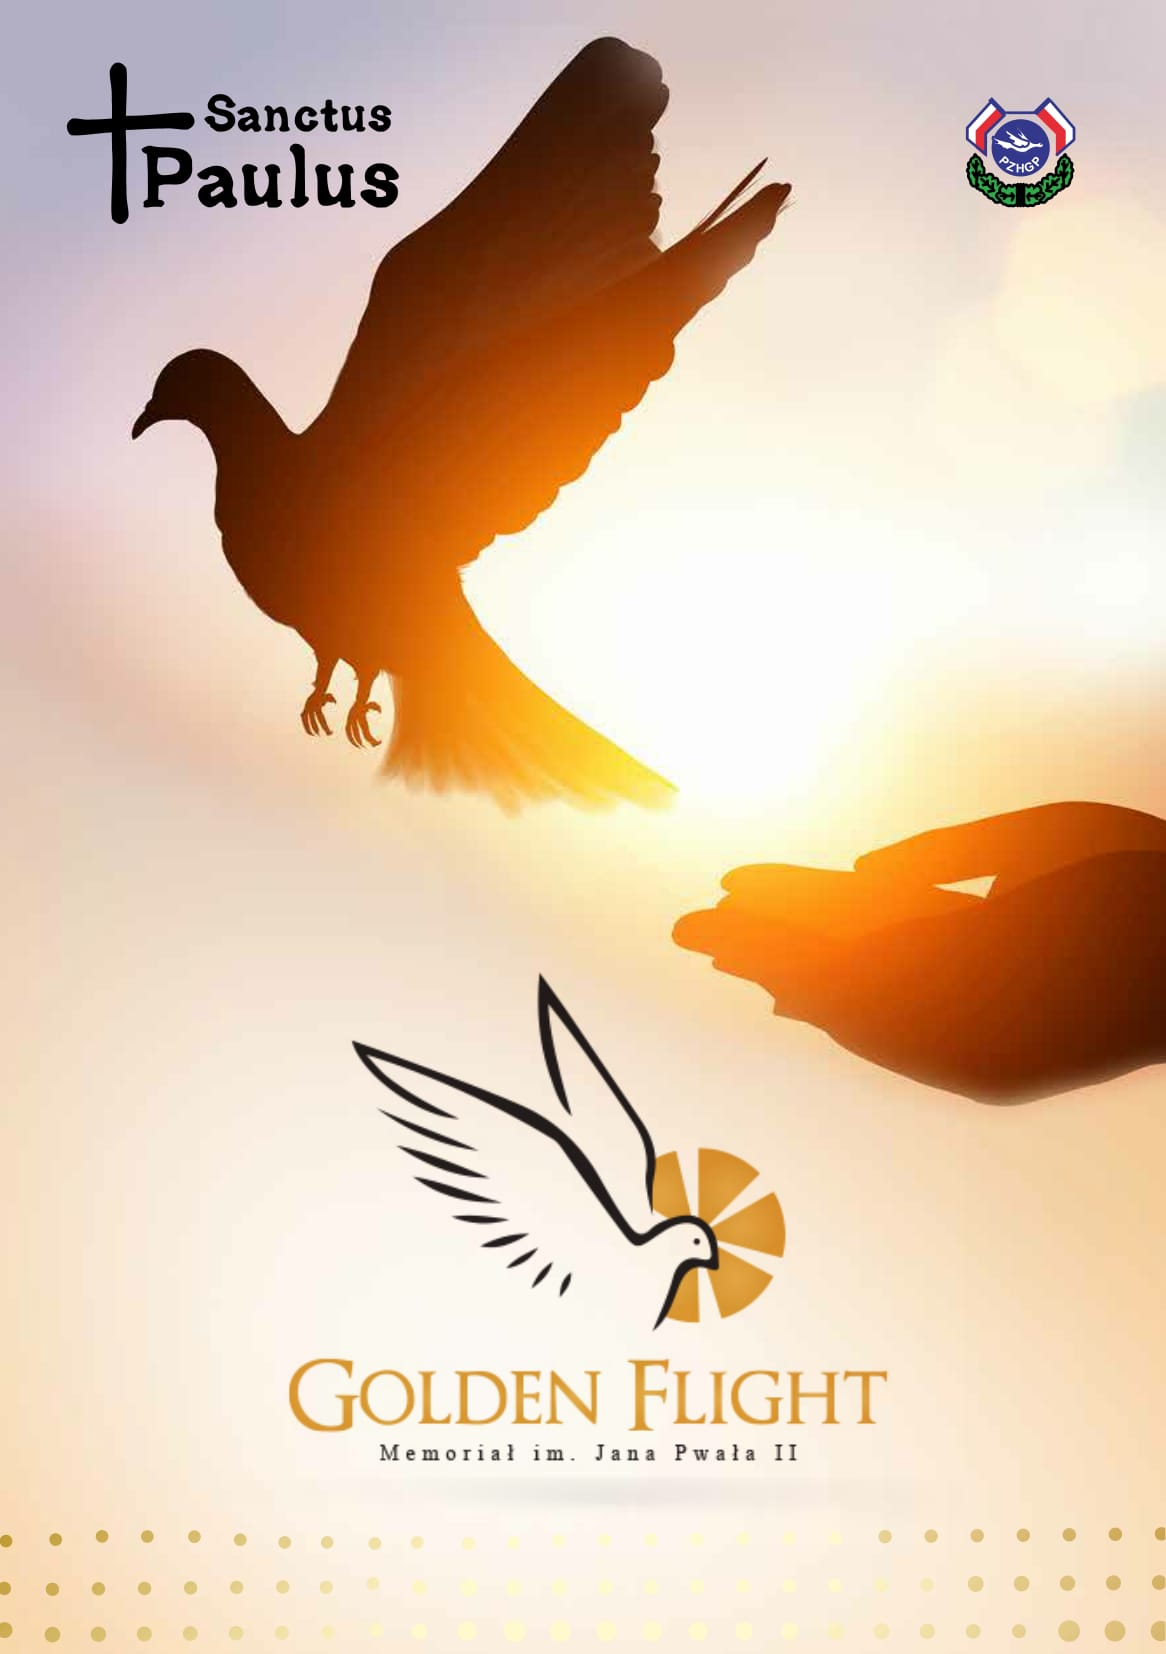 Golden flight A5 28032017-01